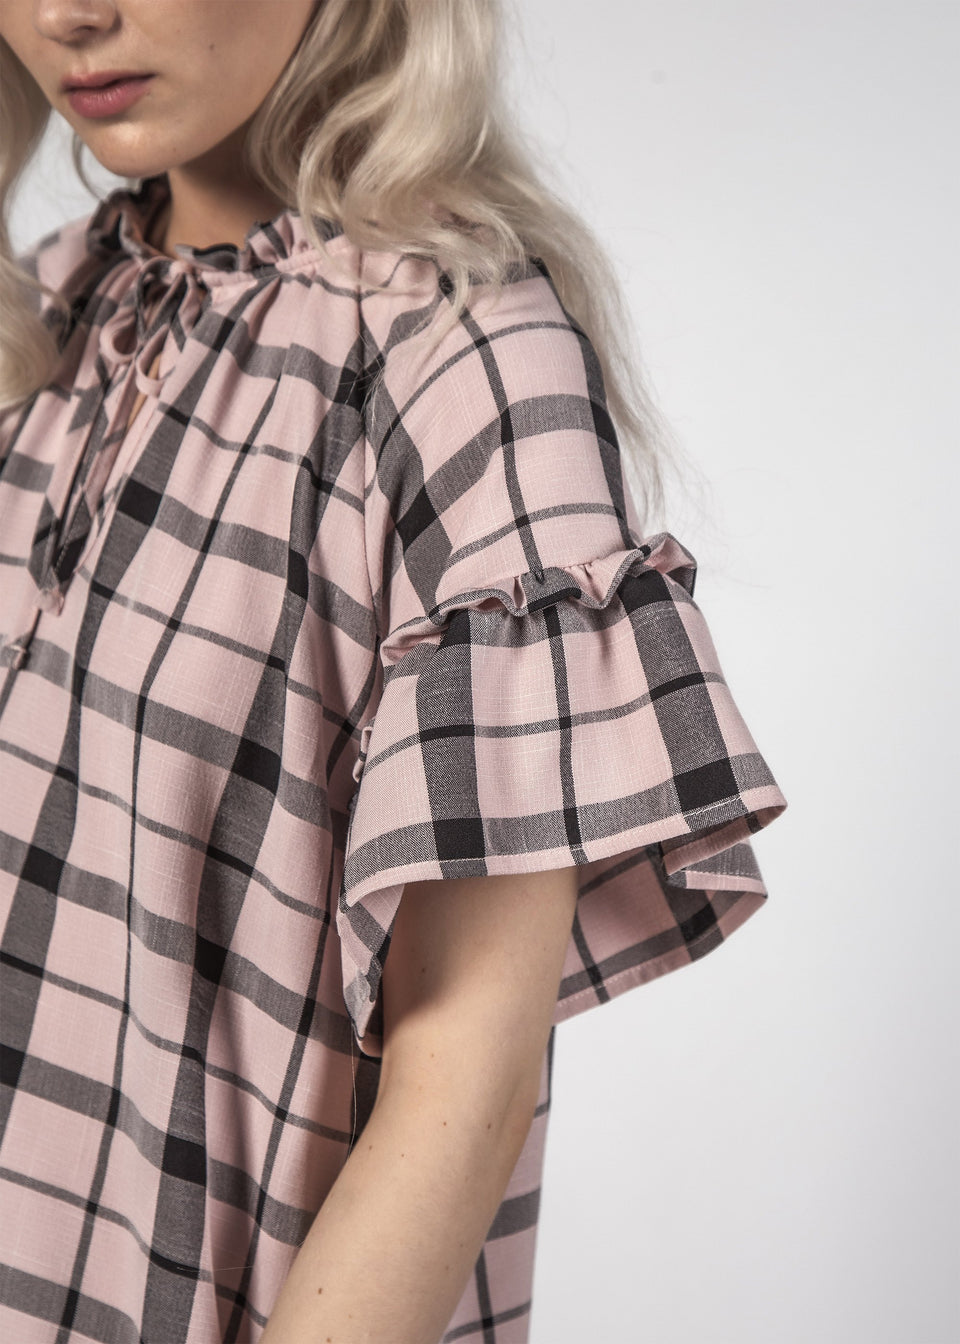 Thing Thing Evie Dress Pastel Check - Stencil